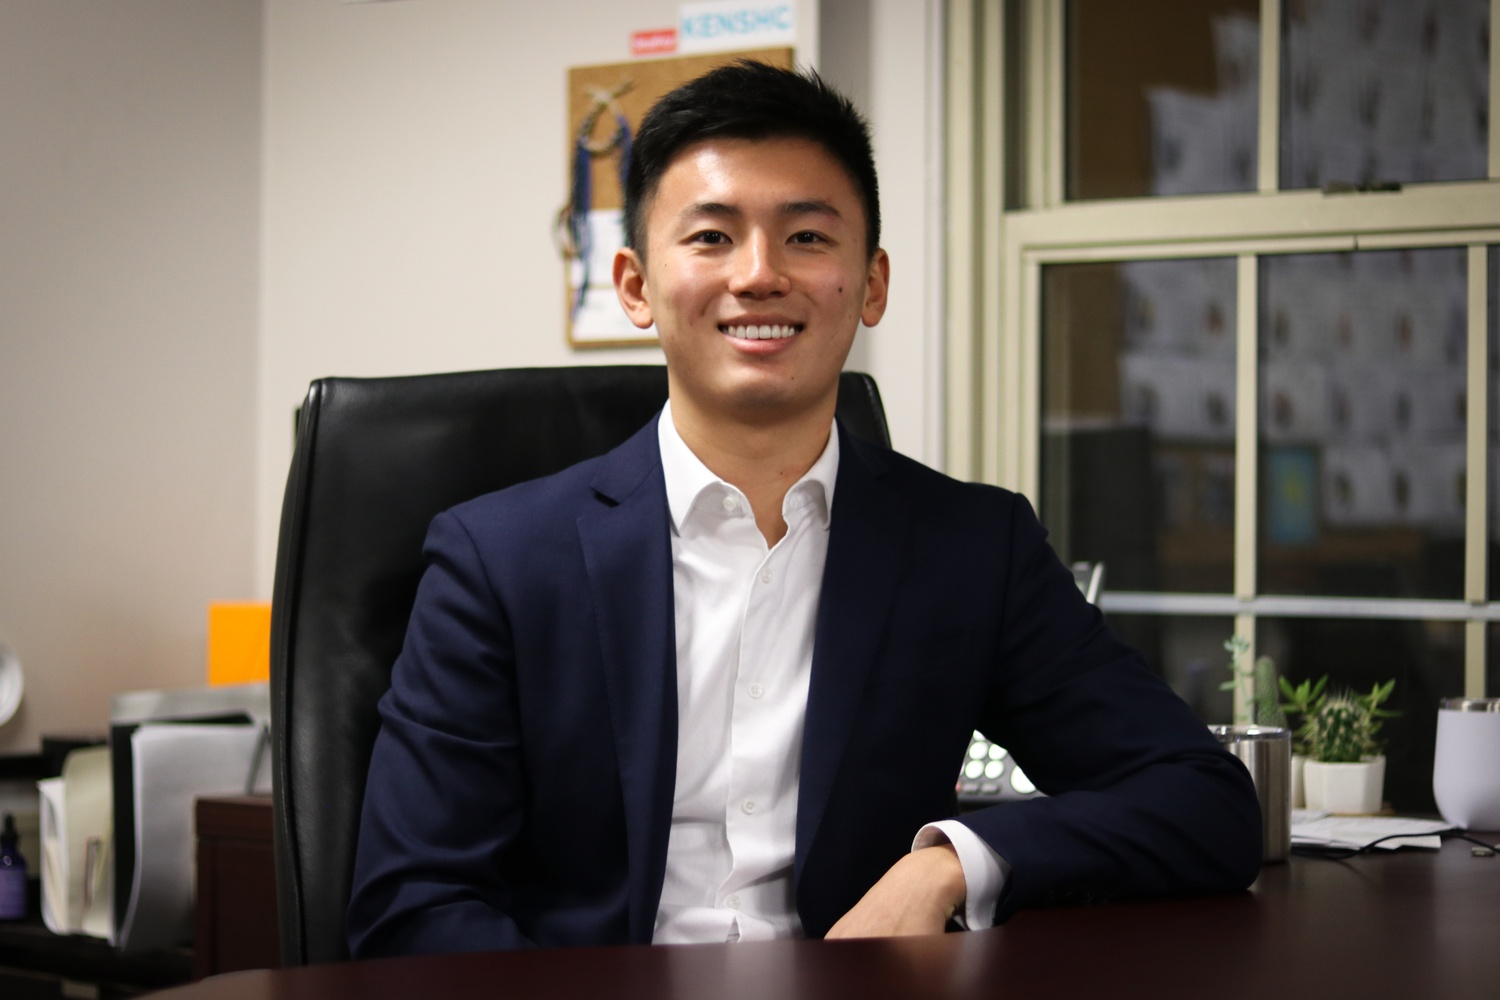 Charlie B. Zhu '20 will serve as Business Manager.